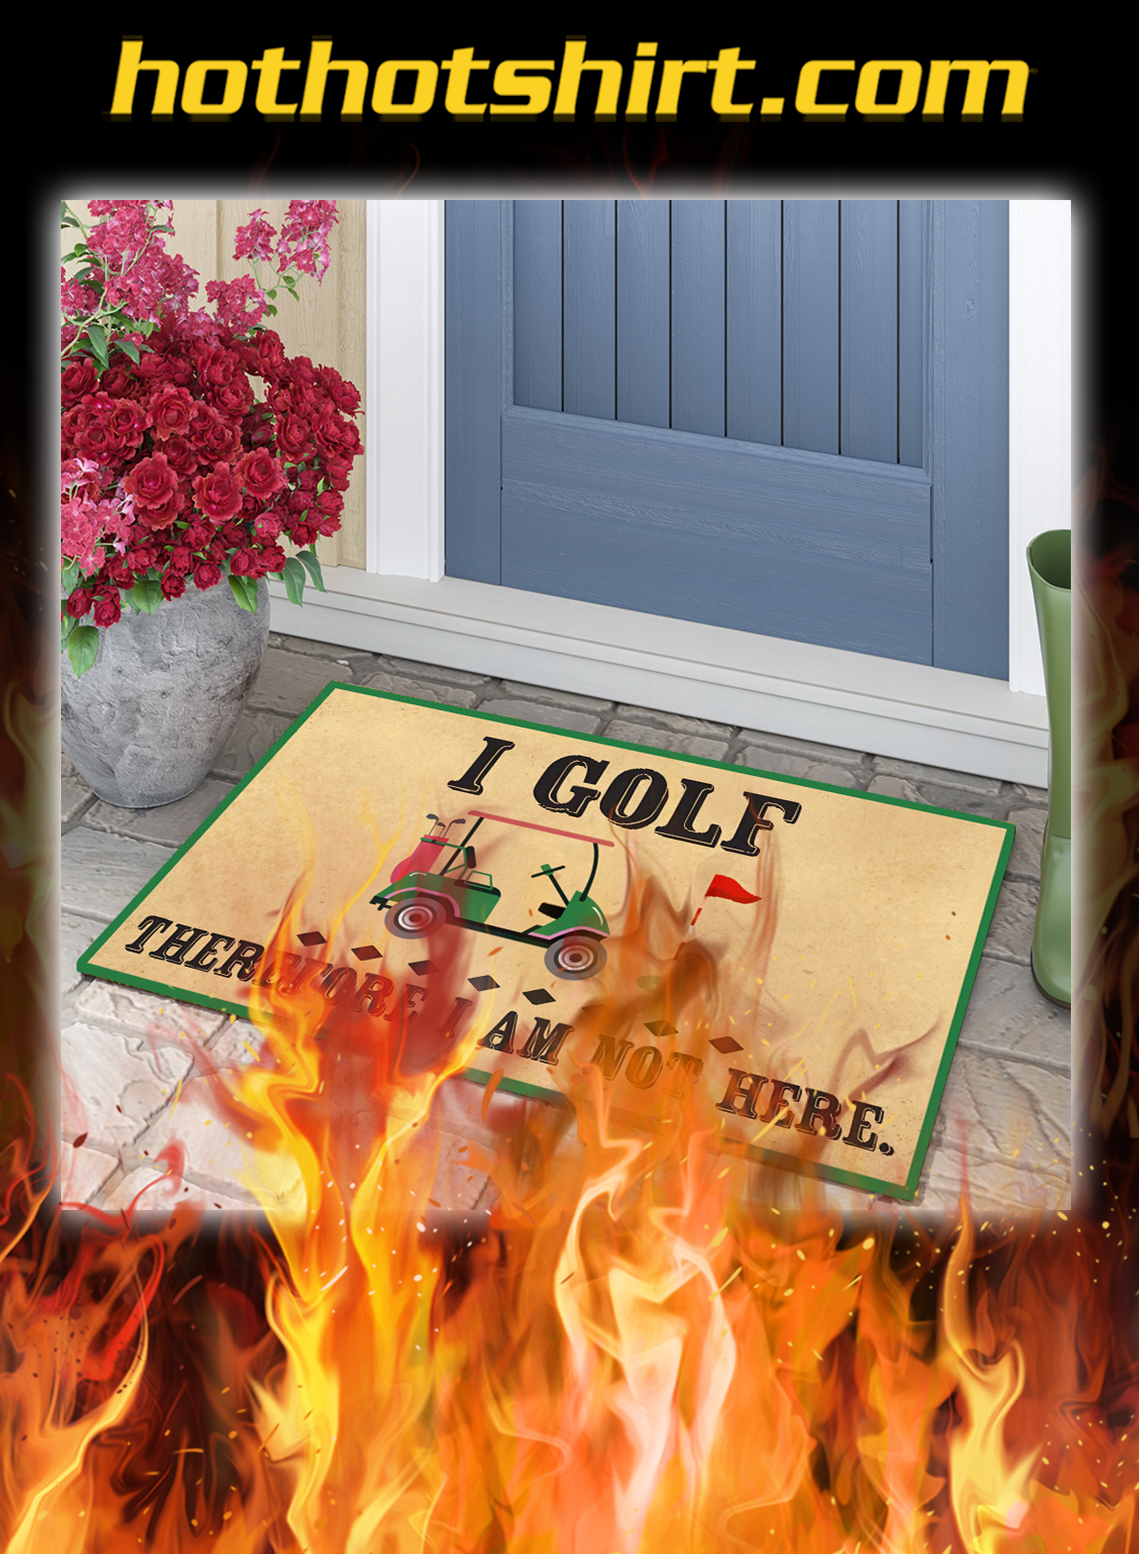 I golf therefore i am not here doormat - pic 1